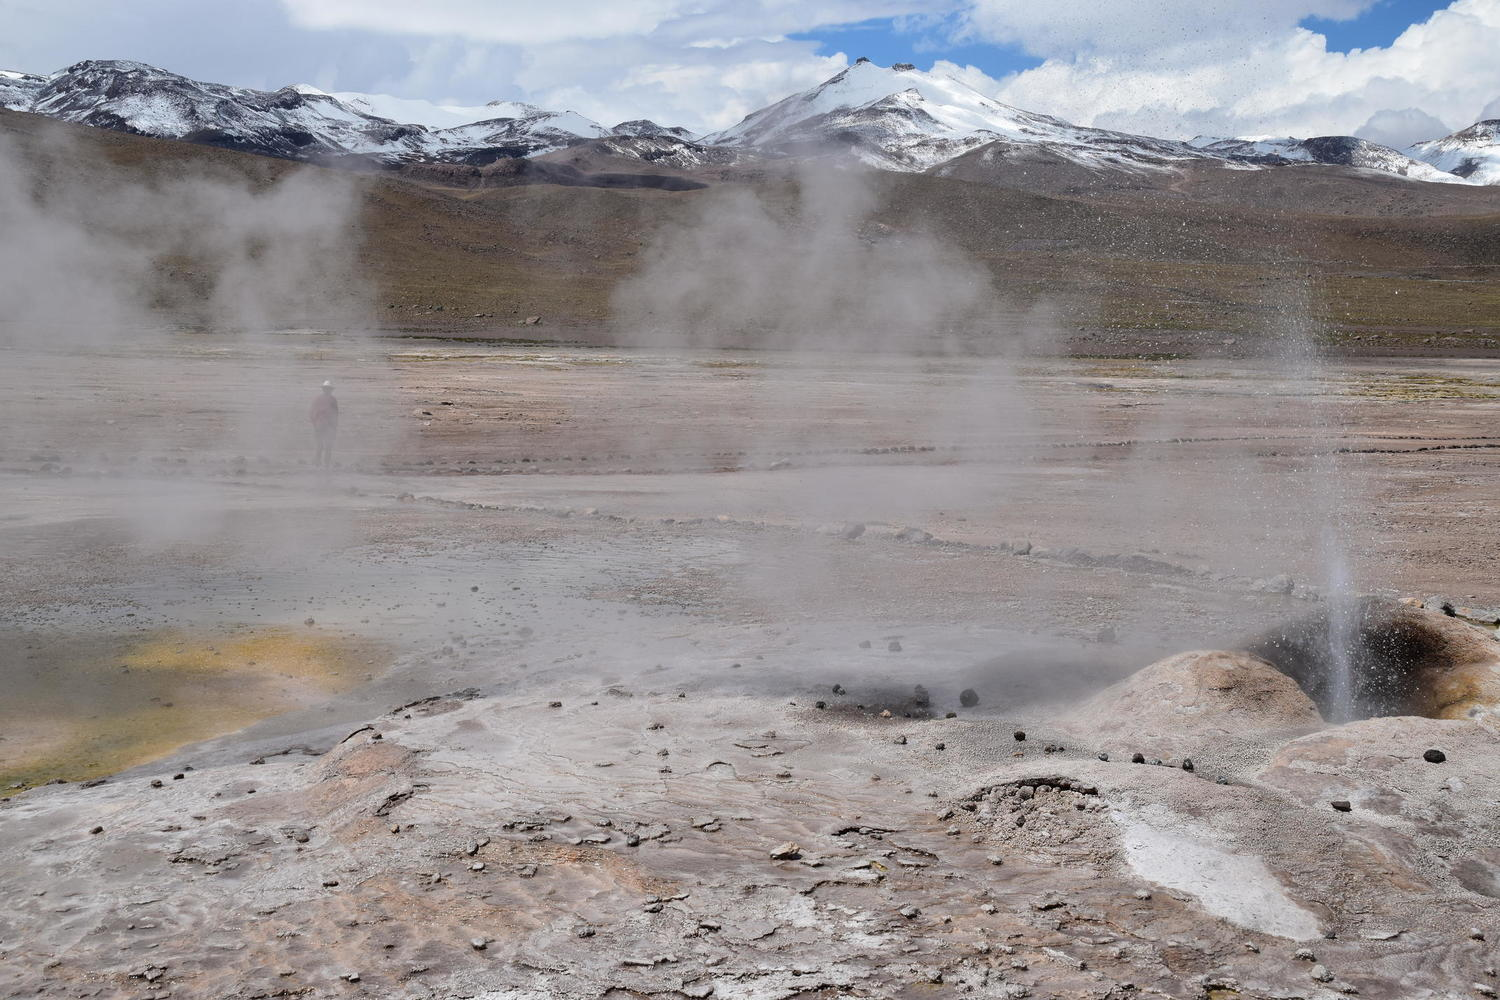 Experiencing the Atacama's Tatio Geysers in near solitude